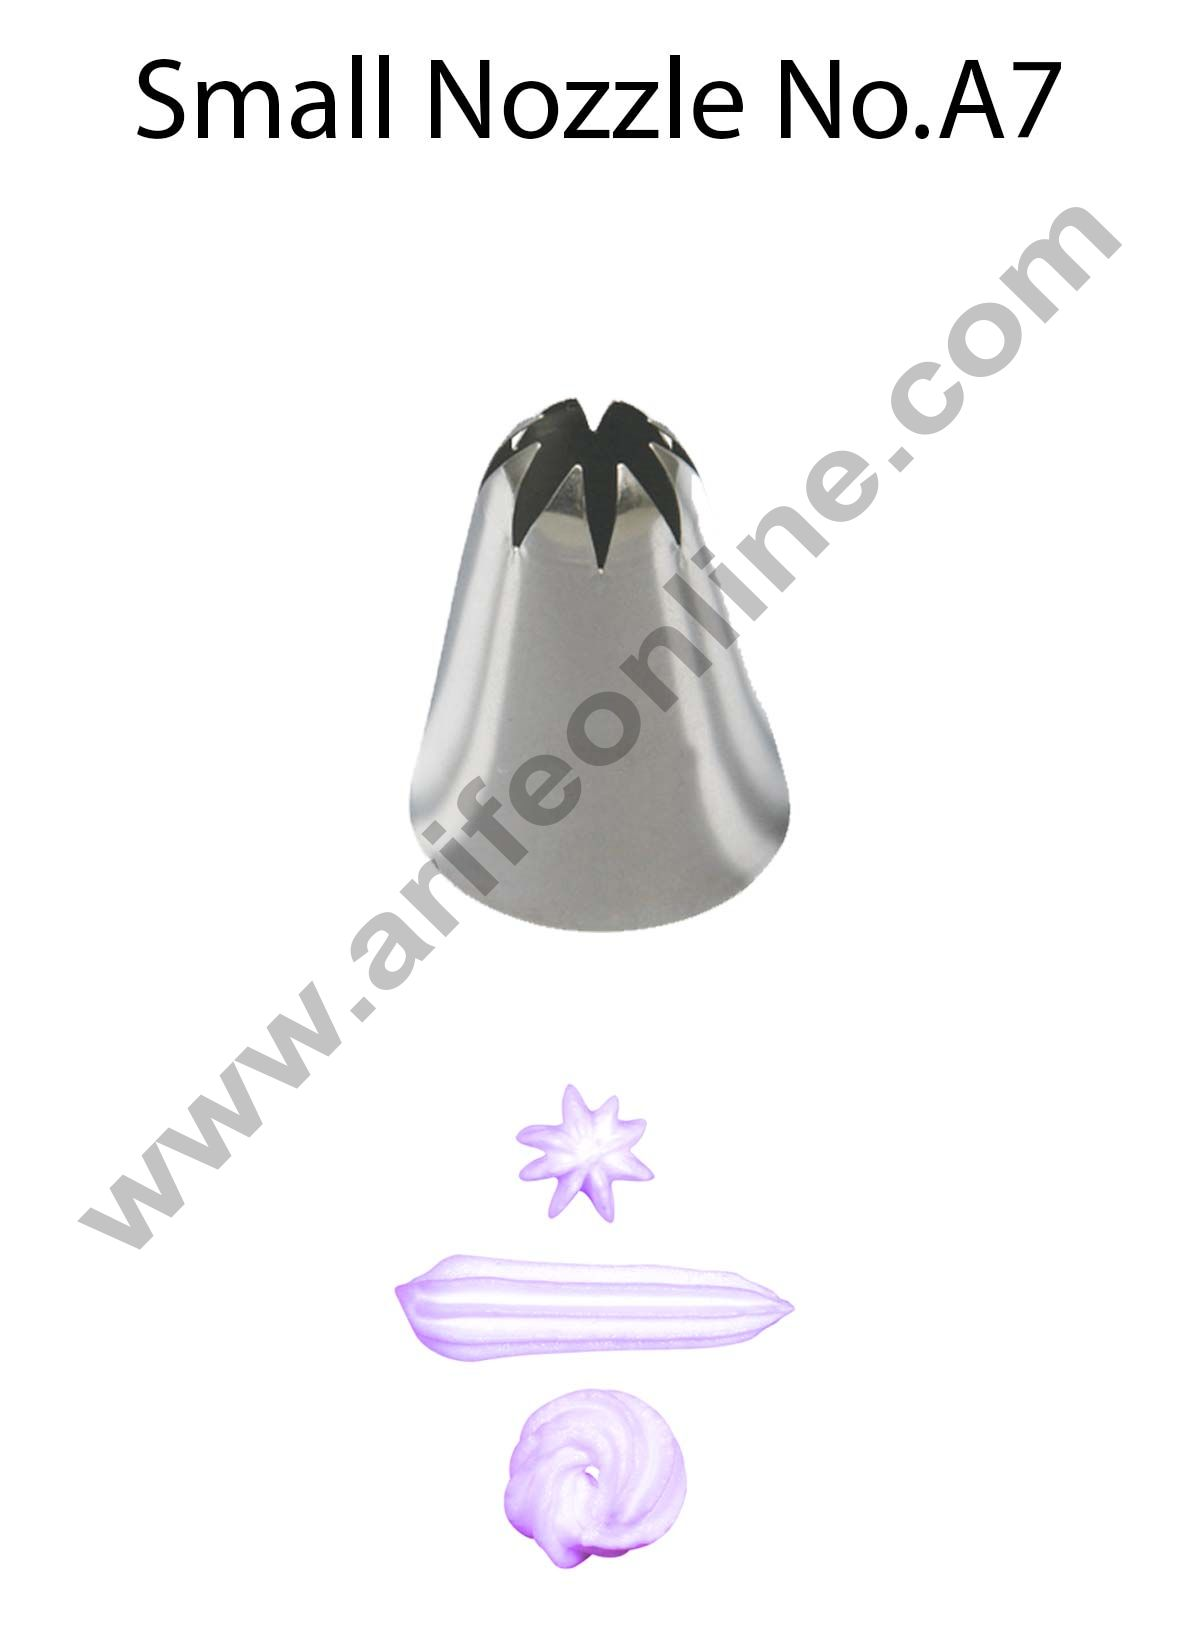 Cake Decor Small Nozzle - No. A7 Closed Star Piping Nozzle